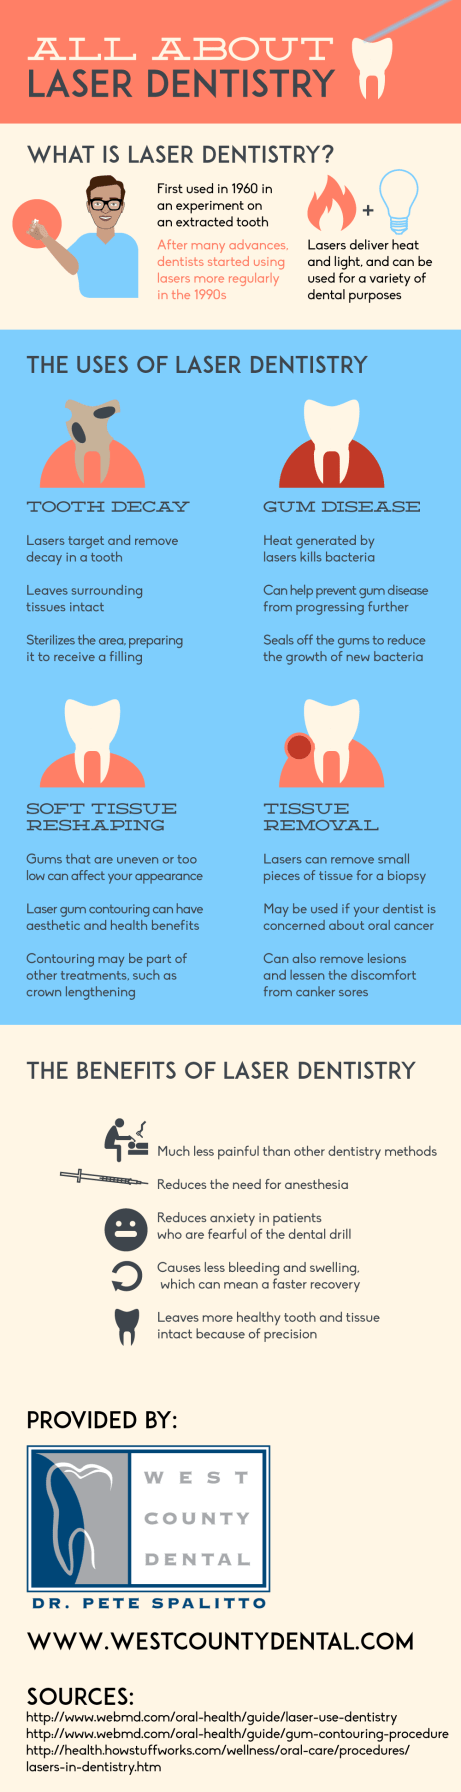 All-About-Laser-Dentistry-Infographic[1]-min